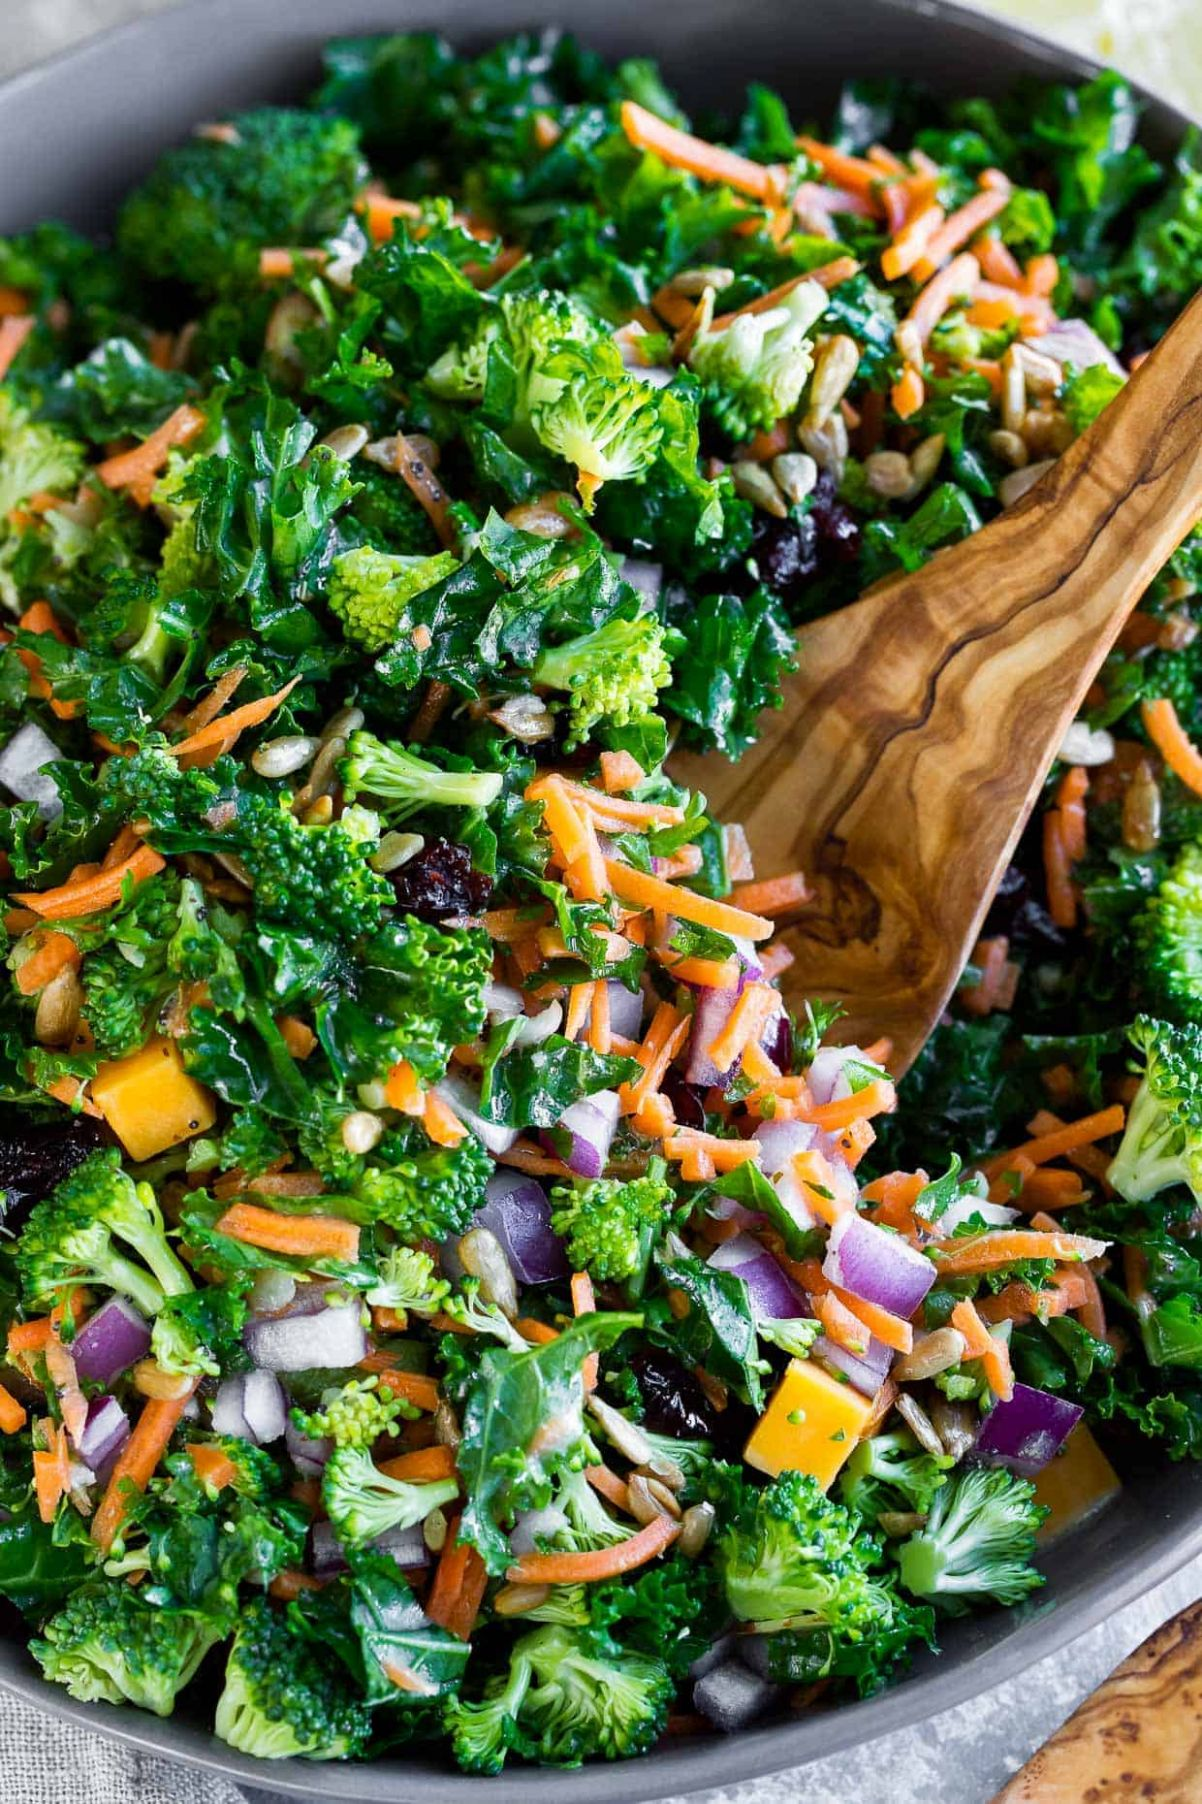 Easy Kale Salad with Fresh Lemon Dressing - Salad Recipes Veg For Dinner